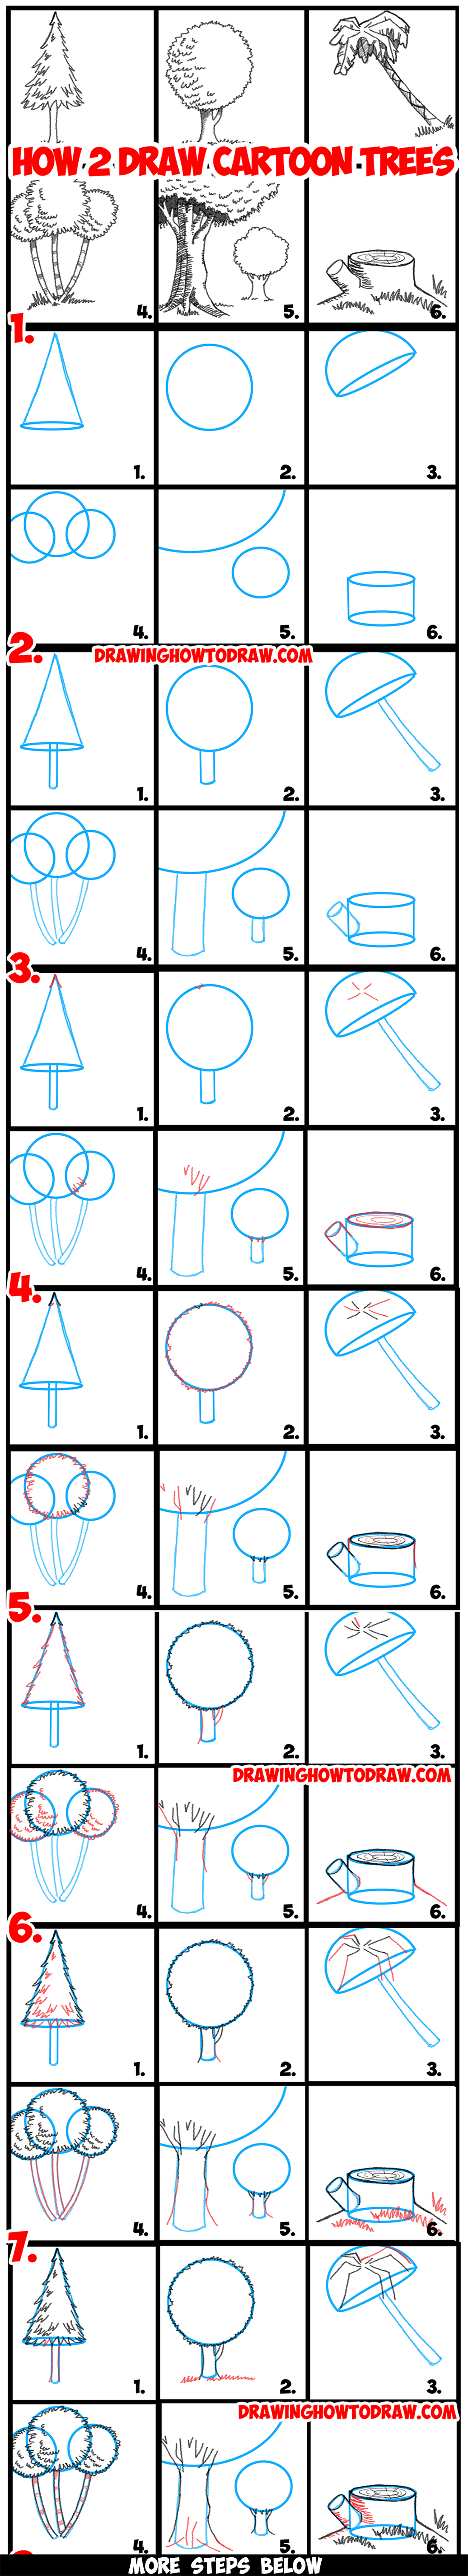 Guide to drawing cartoon trees with basic geometric shapes for Cartoon drawing tutorials for beginners